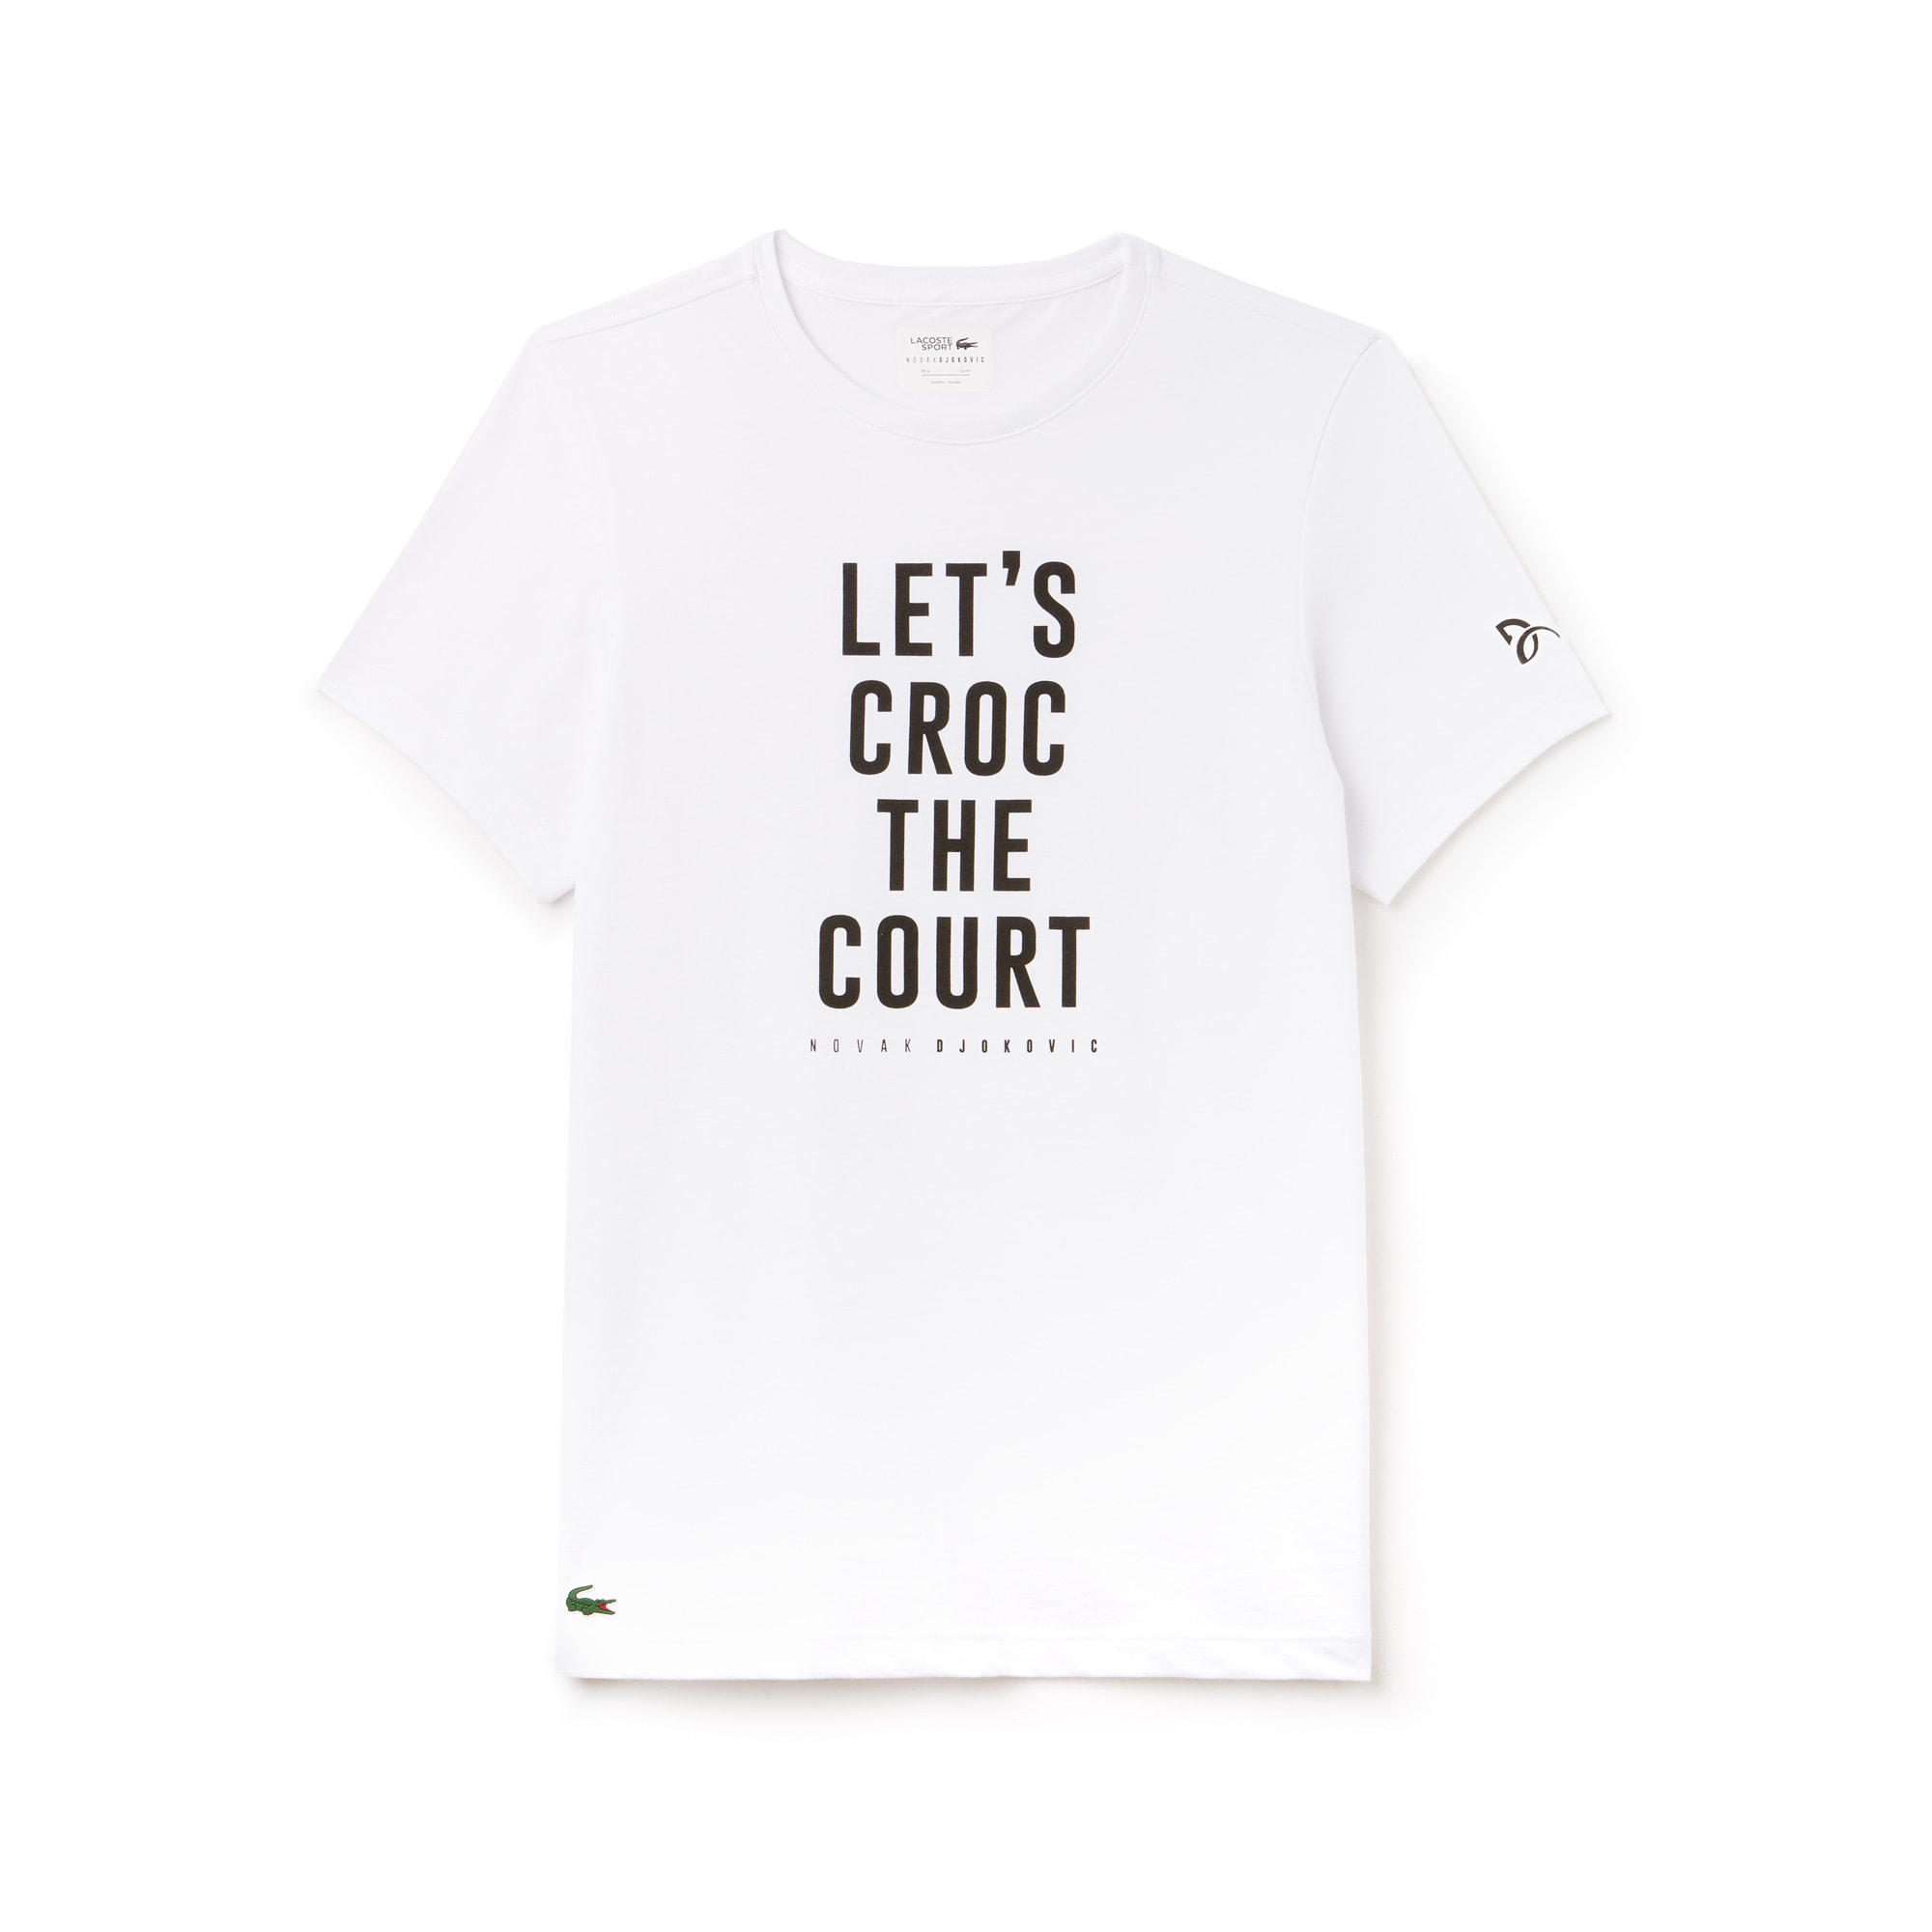 Camiseta De Hombre Lacoste SPORT Novak Djokovic Support With Style -Off Court Collection En Tejido De Punto Técnico Con Inscripción Y Cuello Redondo